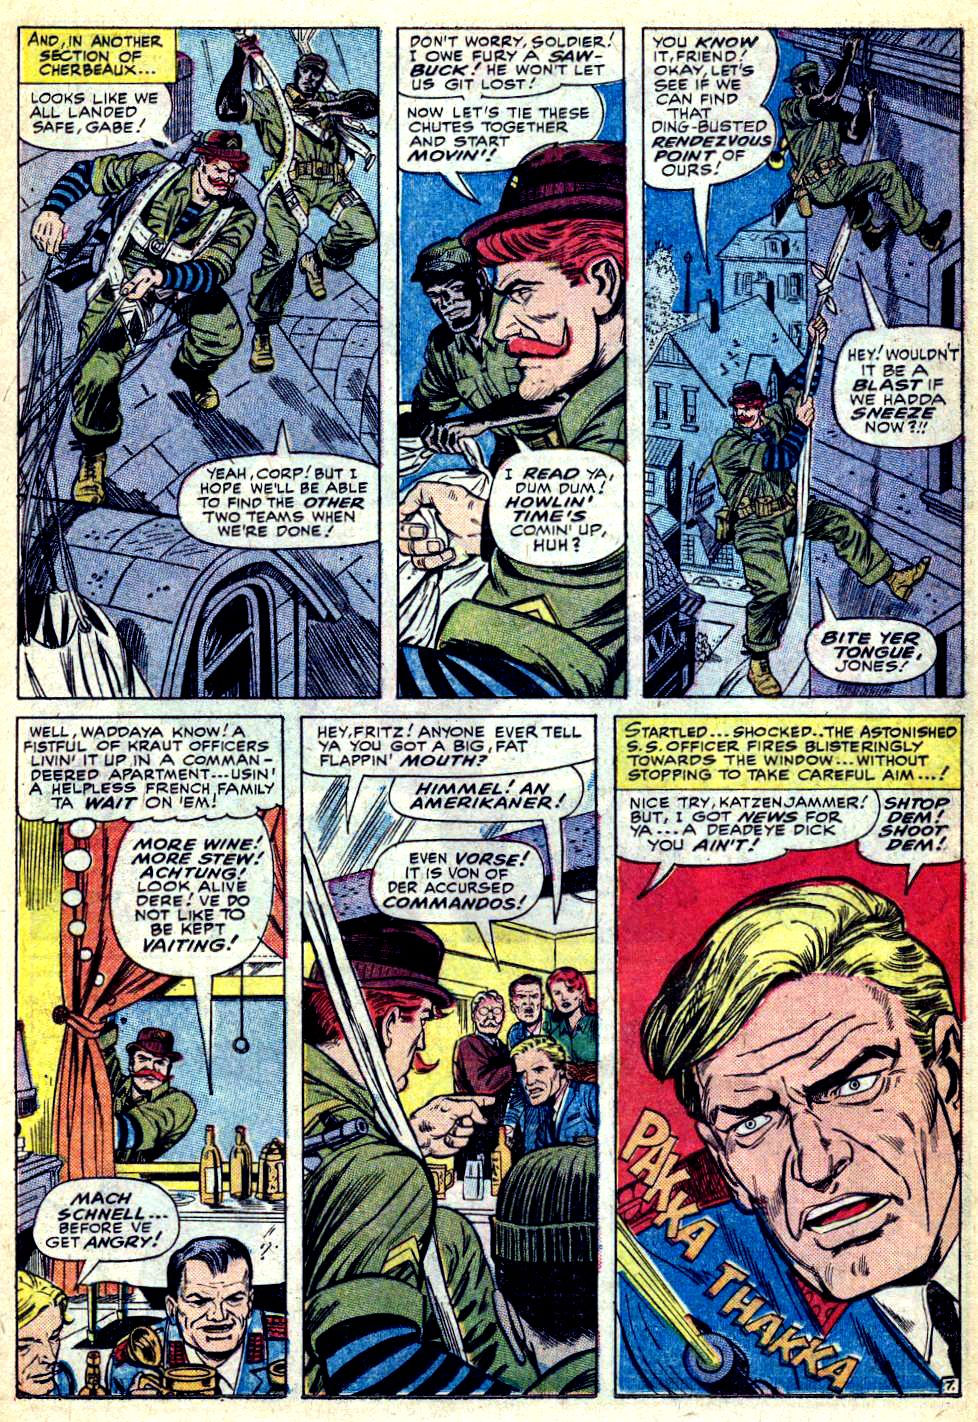 Read online Sgt. Fury comic -  Issue #28 - 11